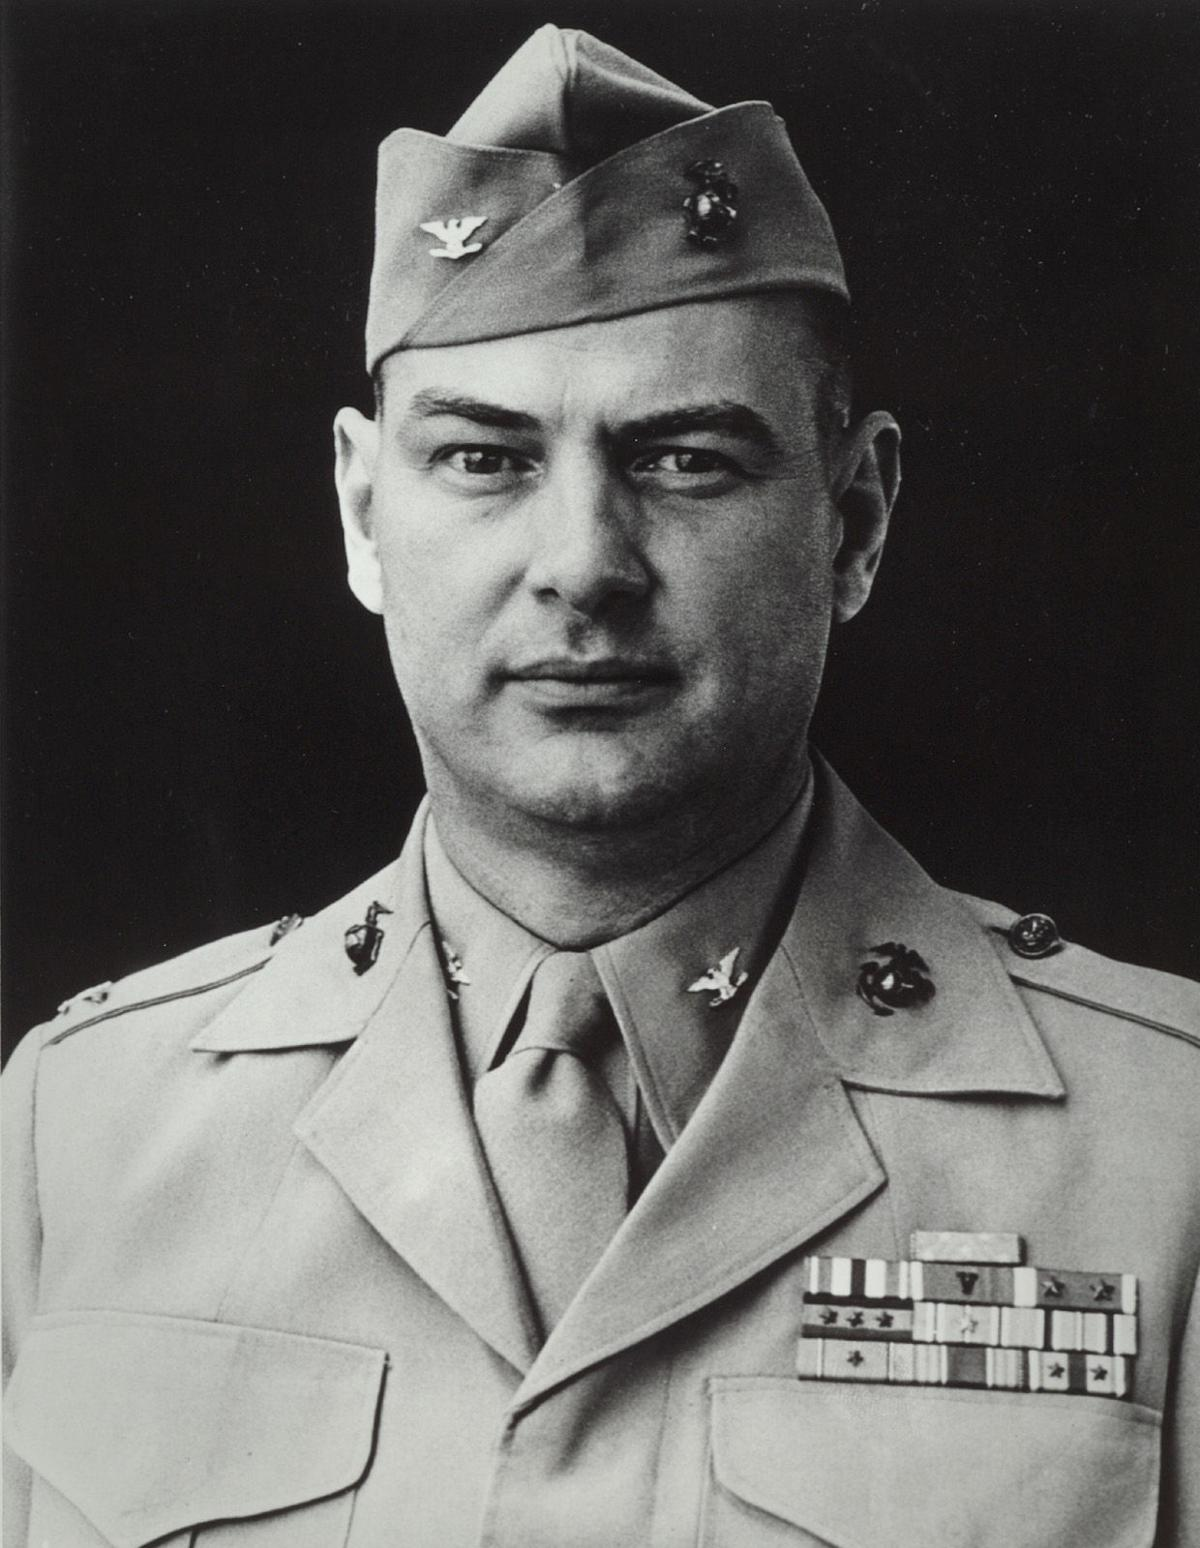 Justice M. Chambers, USMC, Medal of Honor recipient; photo from official Marine Corps biography